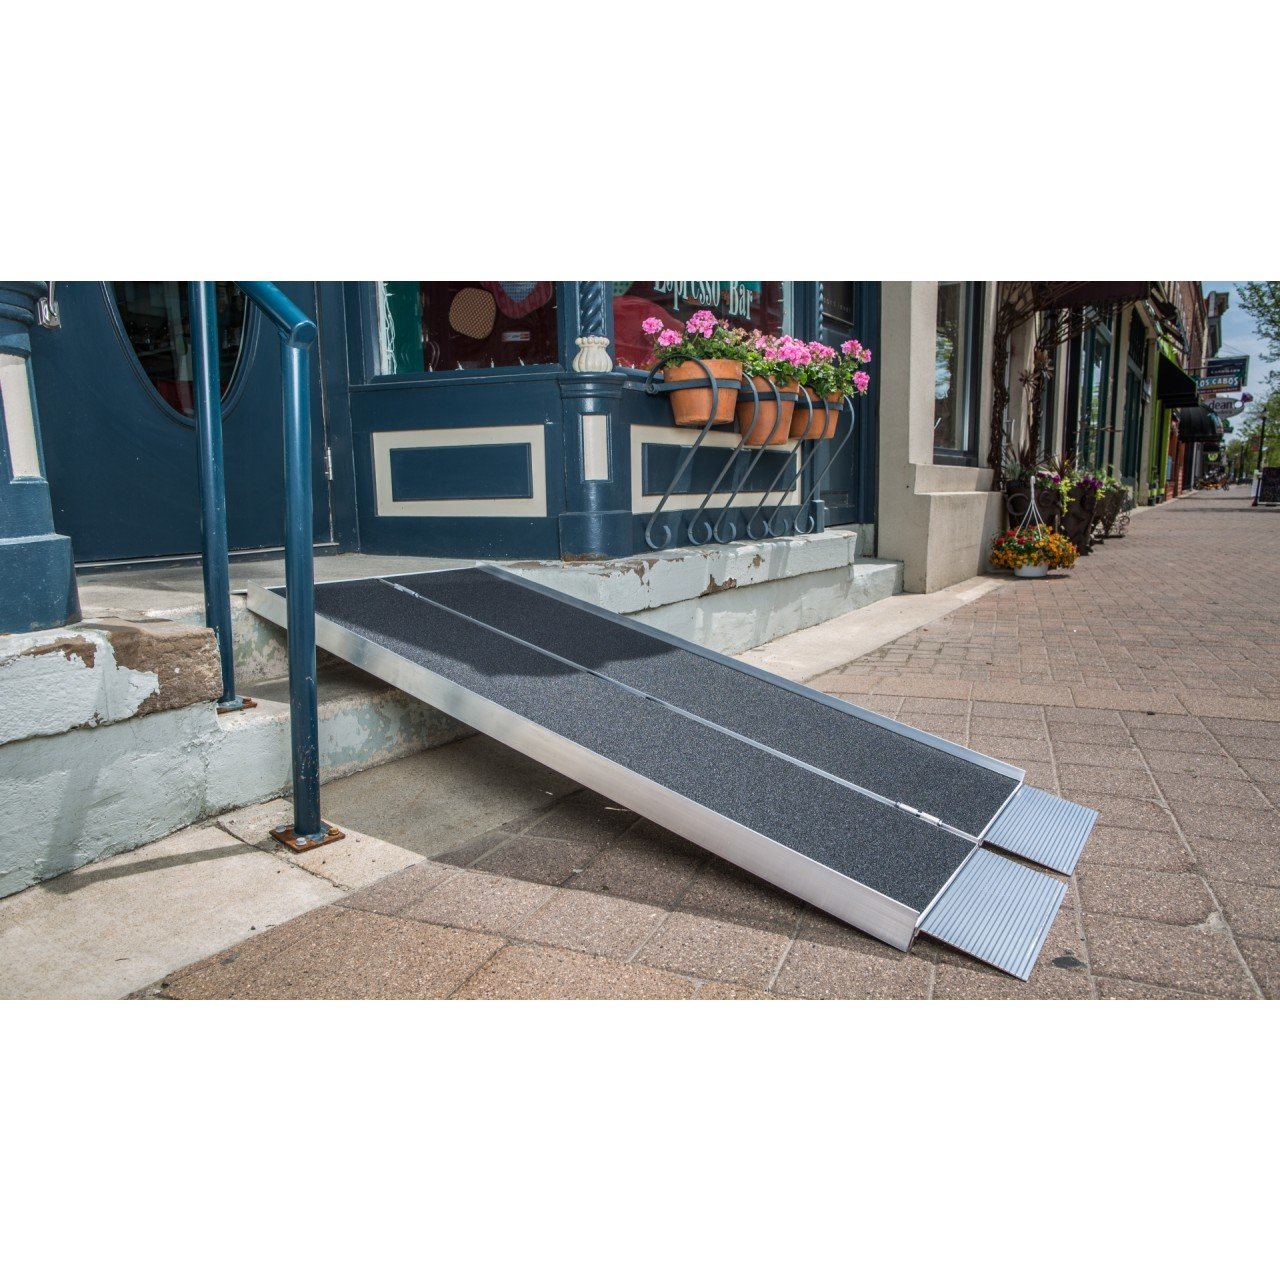 Wheel Chair Rentals 5 6ft Singlefold Wheelchair Ramp Rental In Los Angeles